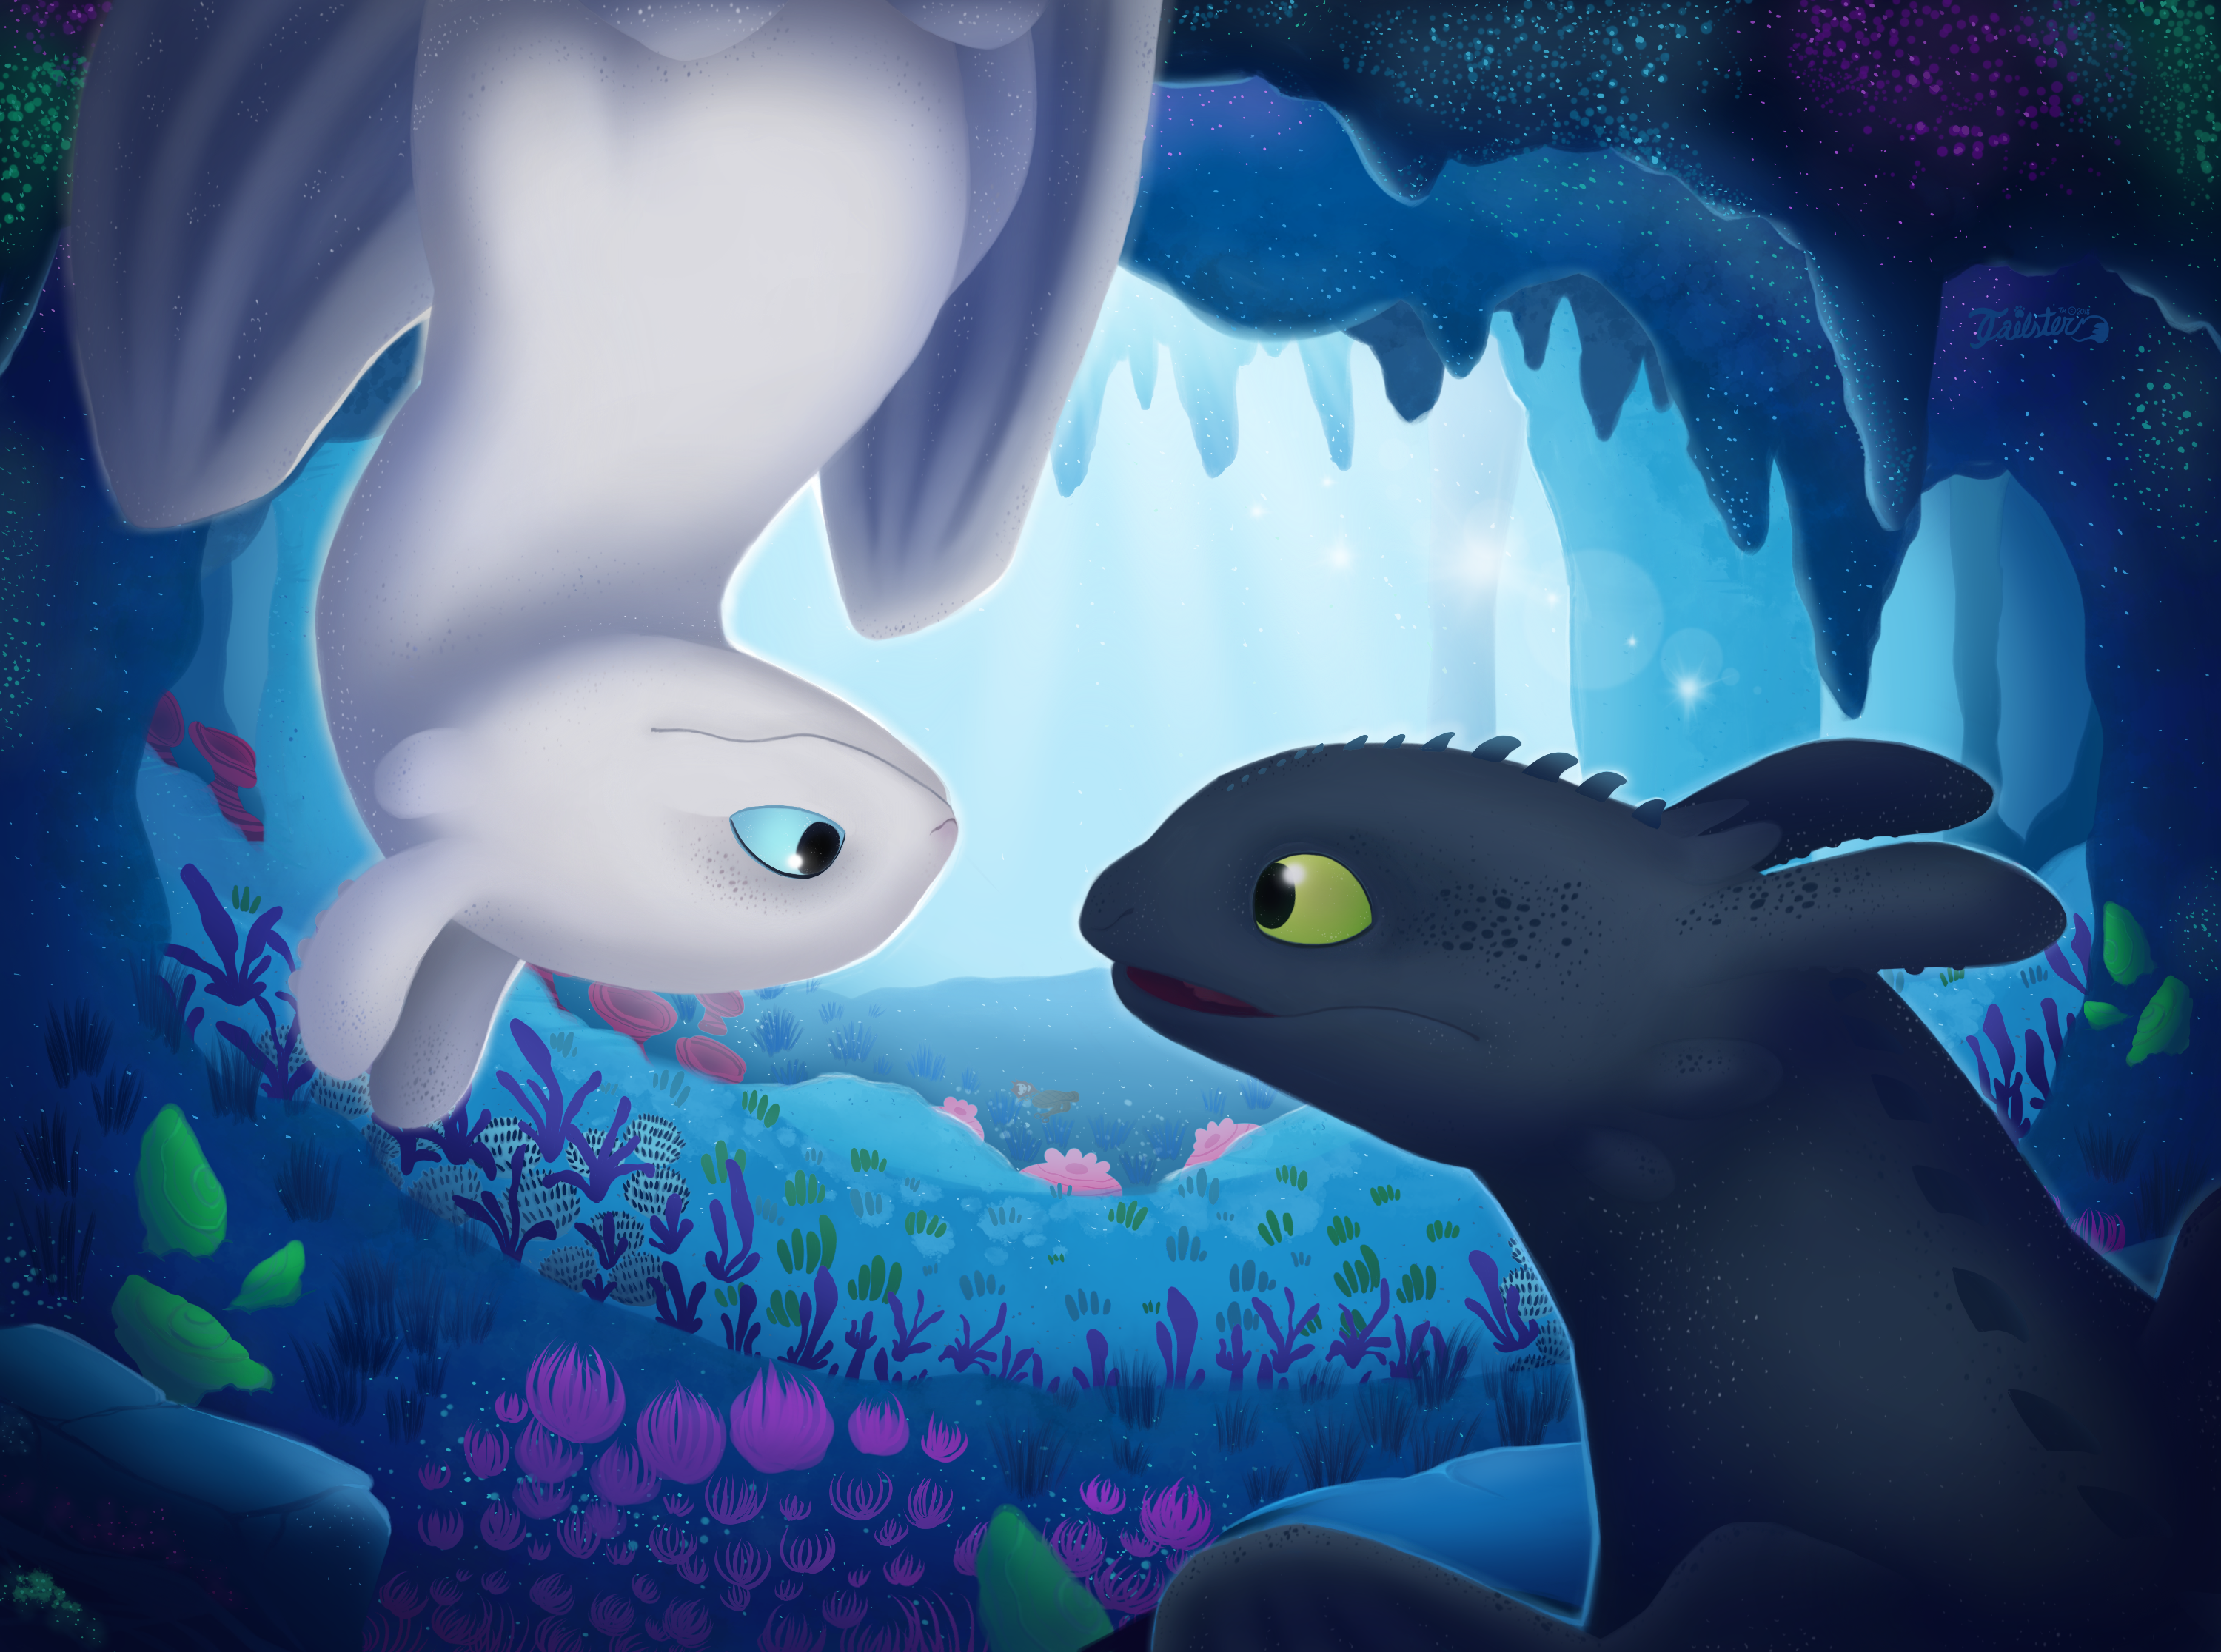 toothless and light fury the white night fury dragon in the cave